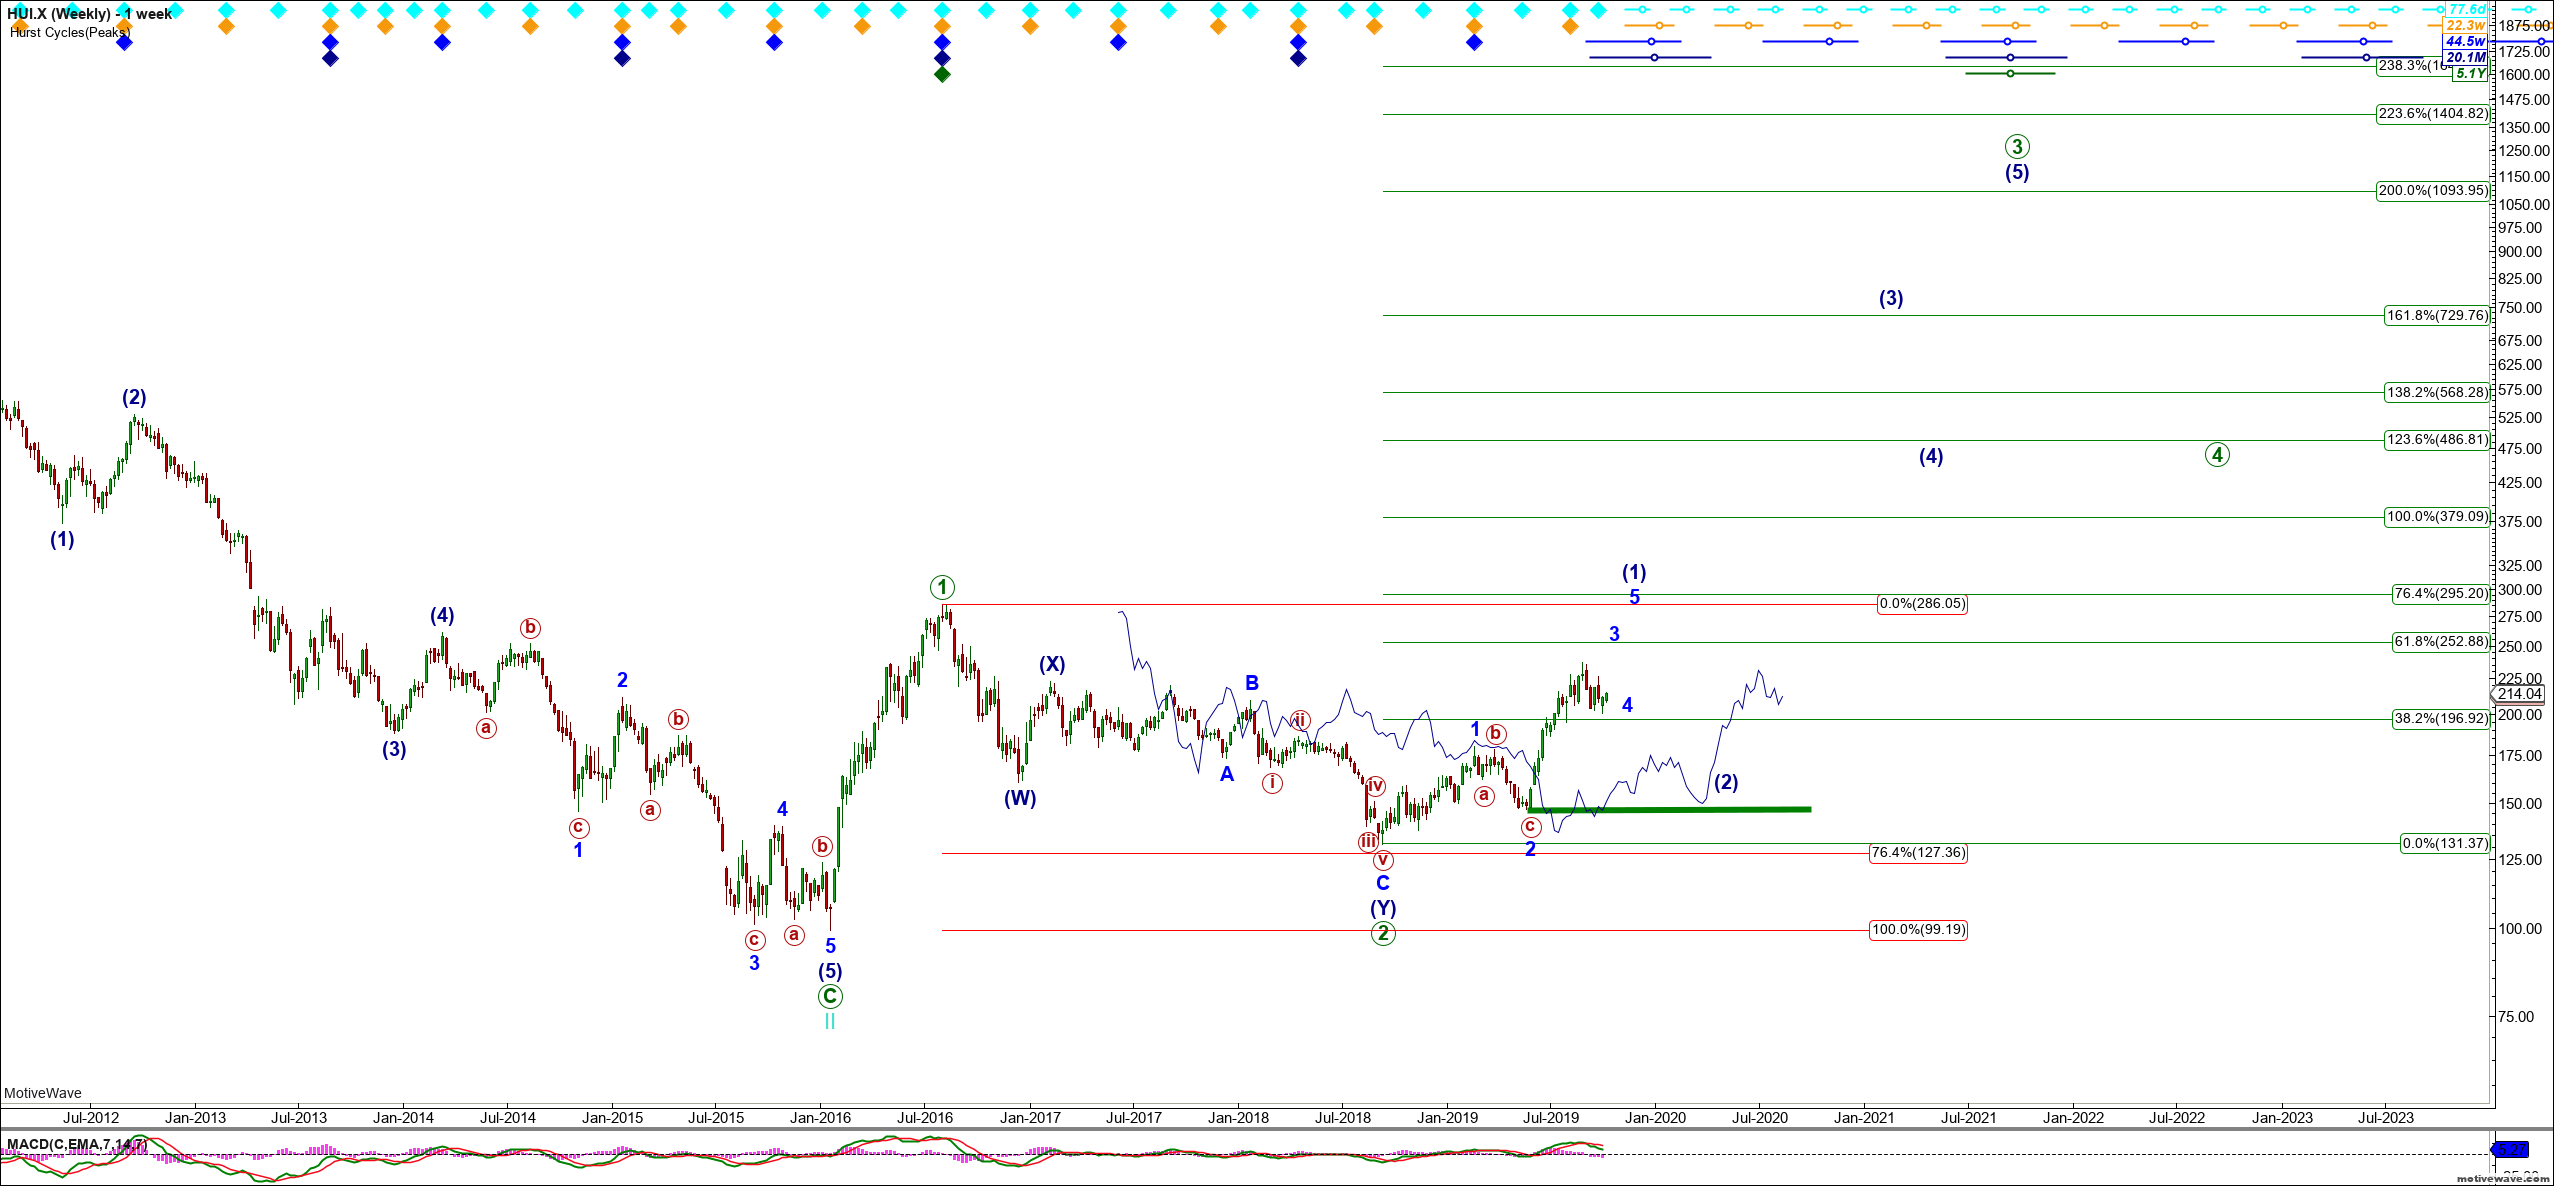 Gold And Miners - Expectations For Future Upside